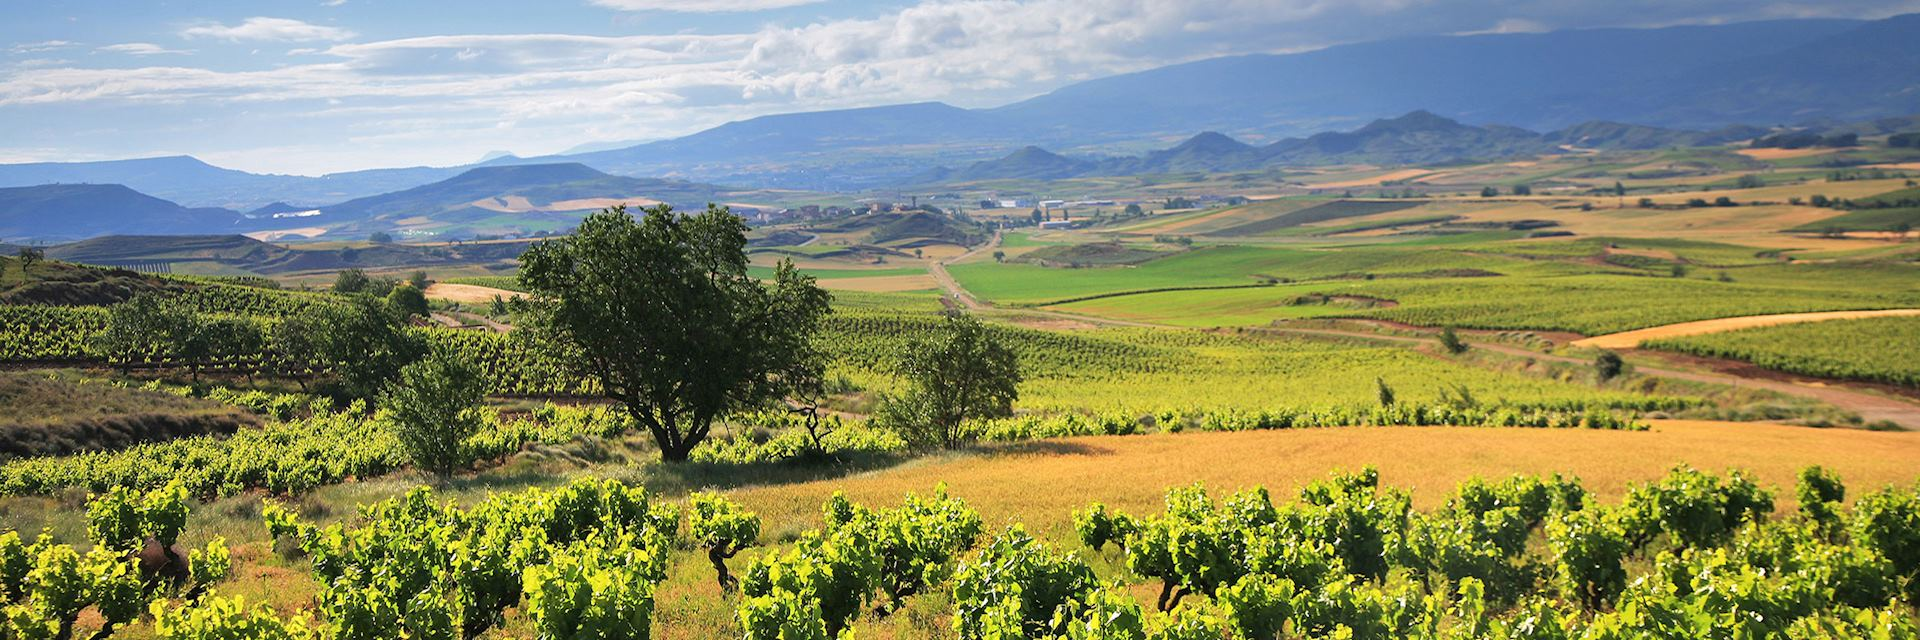 Vineyards in La Rioja wine region